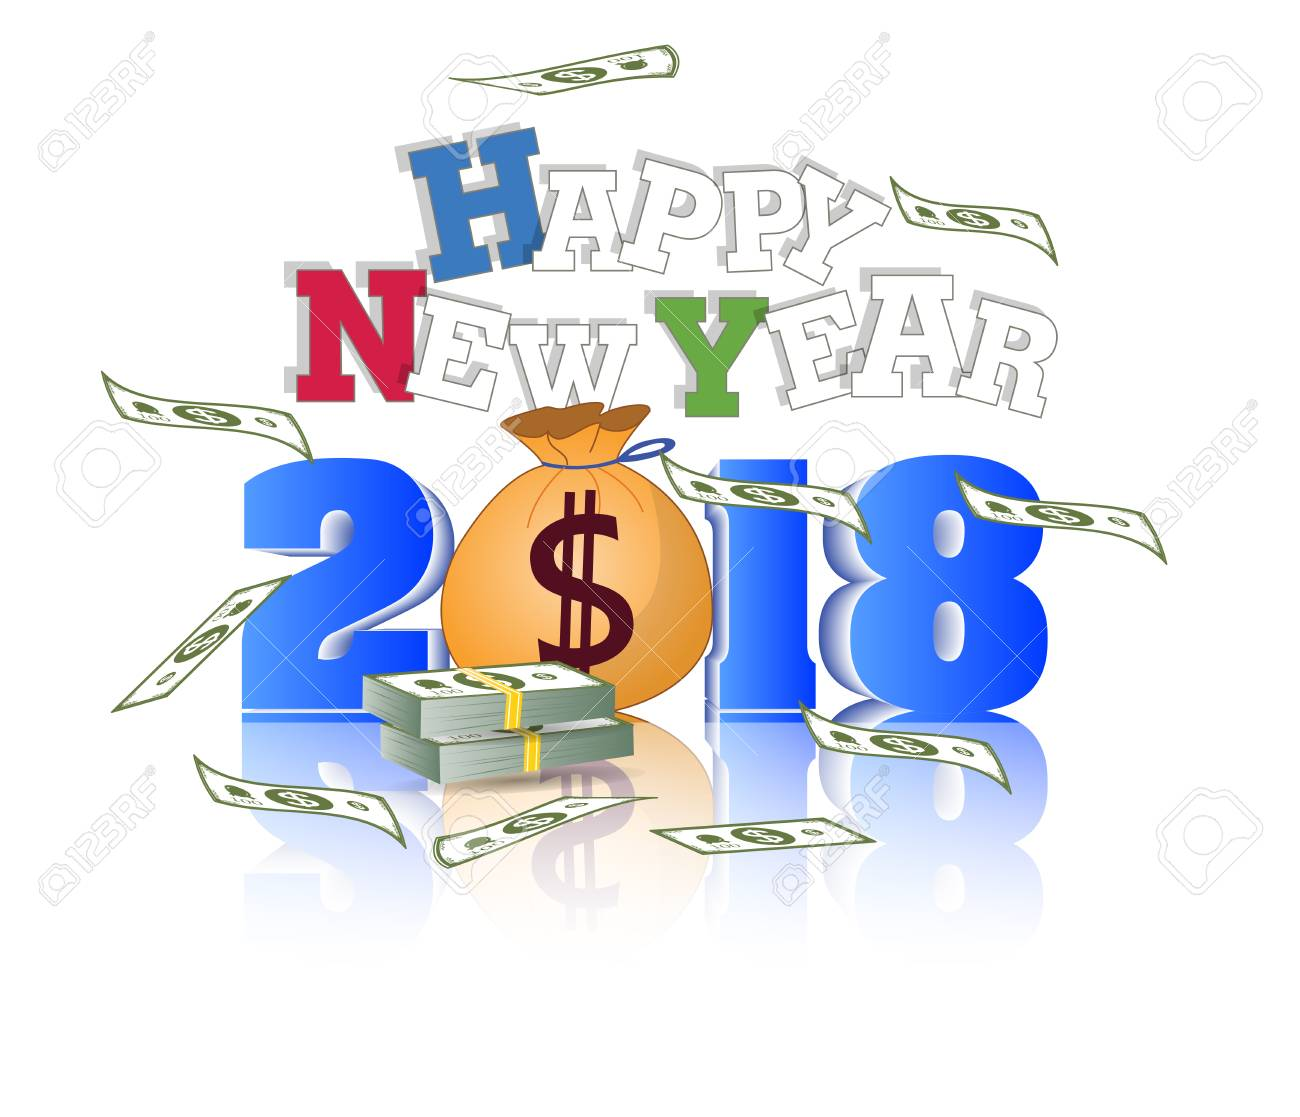 happy new year 2018 with champagne glasses and firework bacground stock vector 87405838